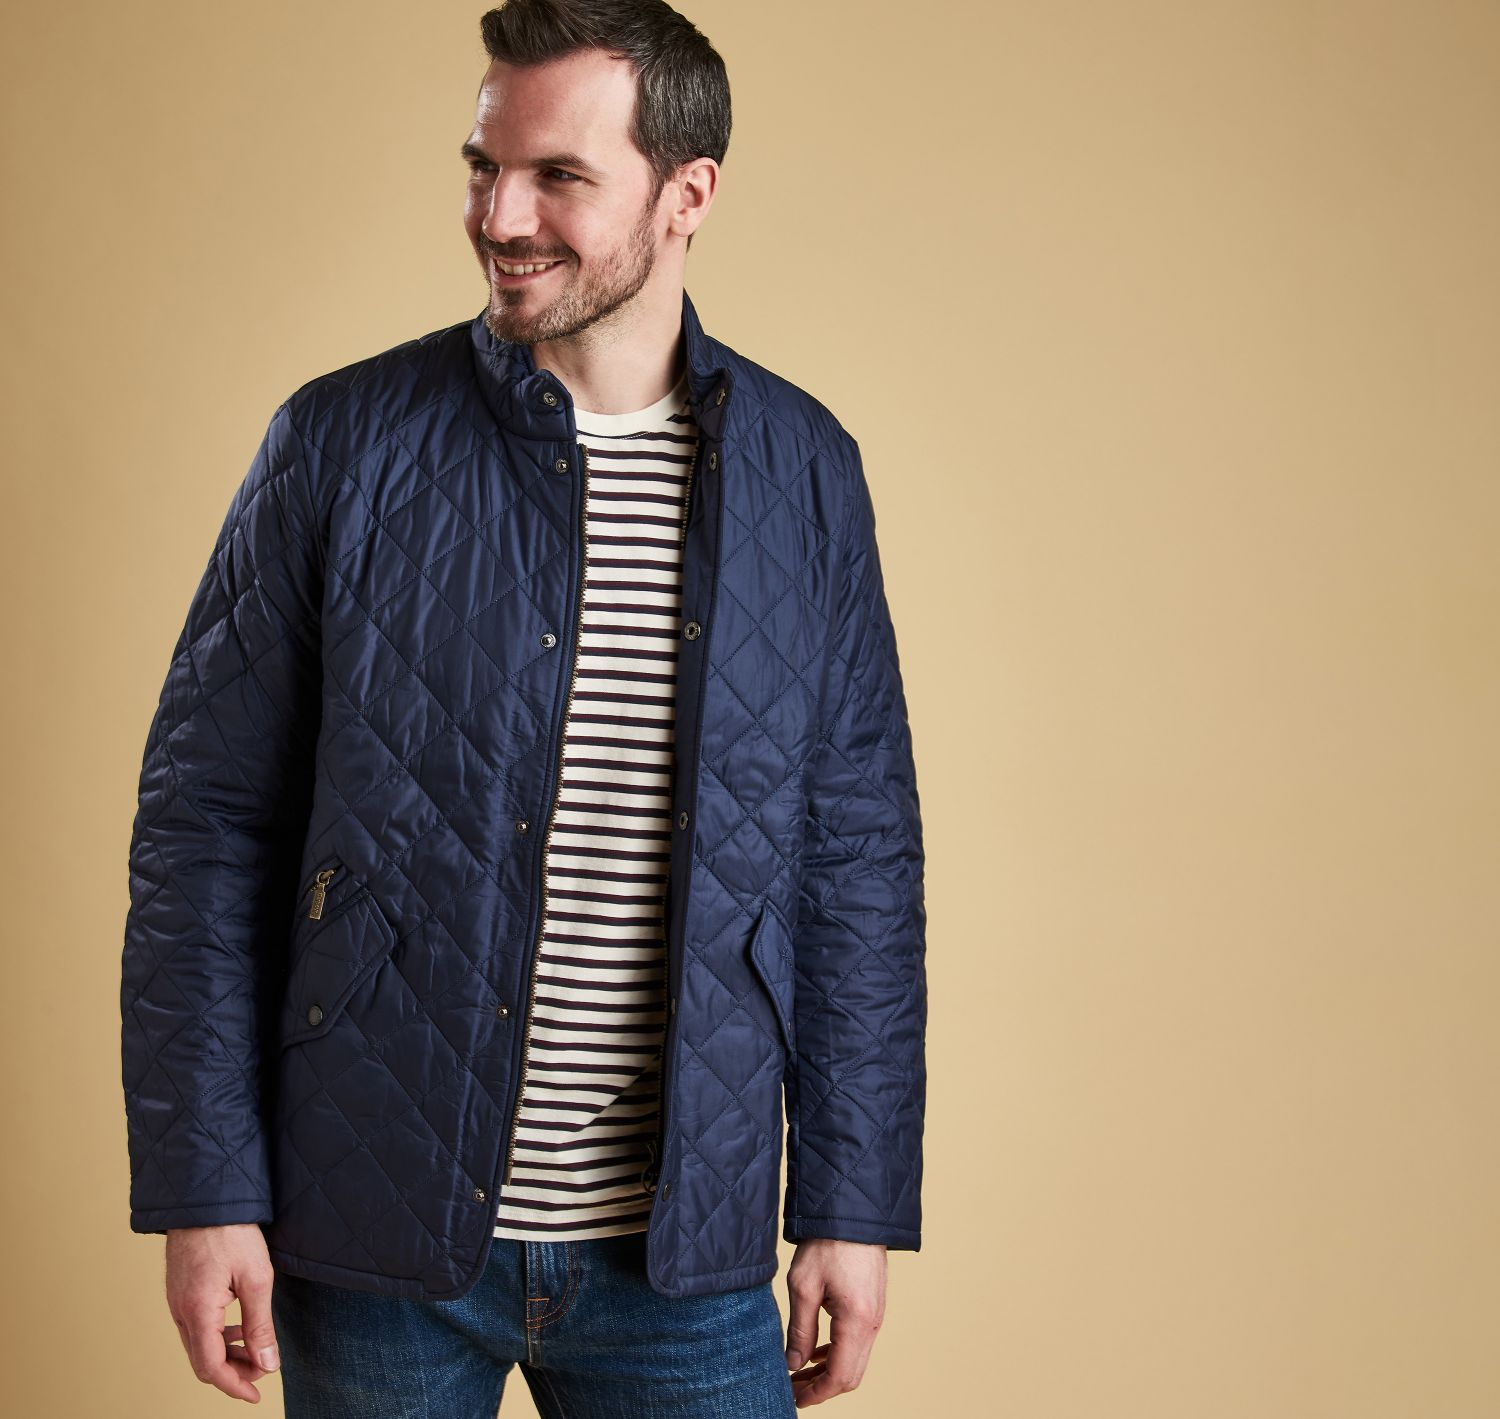 86a877f7de70a Barbour Flyweight Chelsea Quilted Jacket. Skip to the beginning of the  images gallery